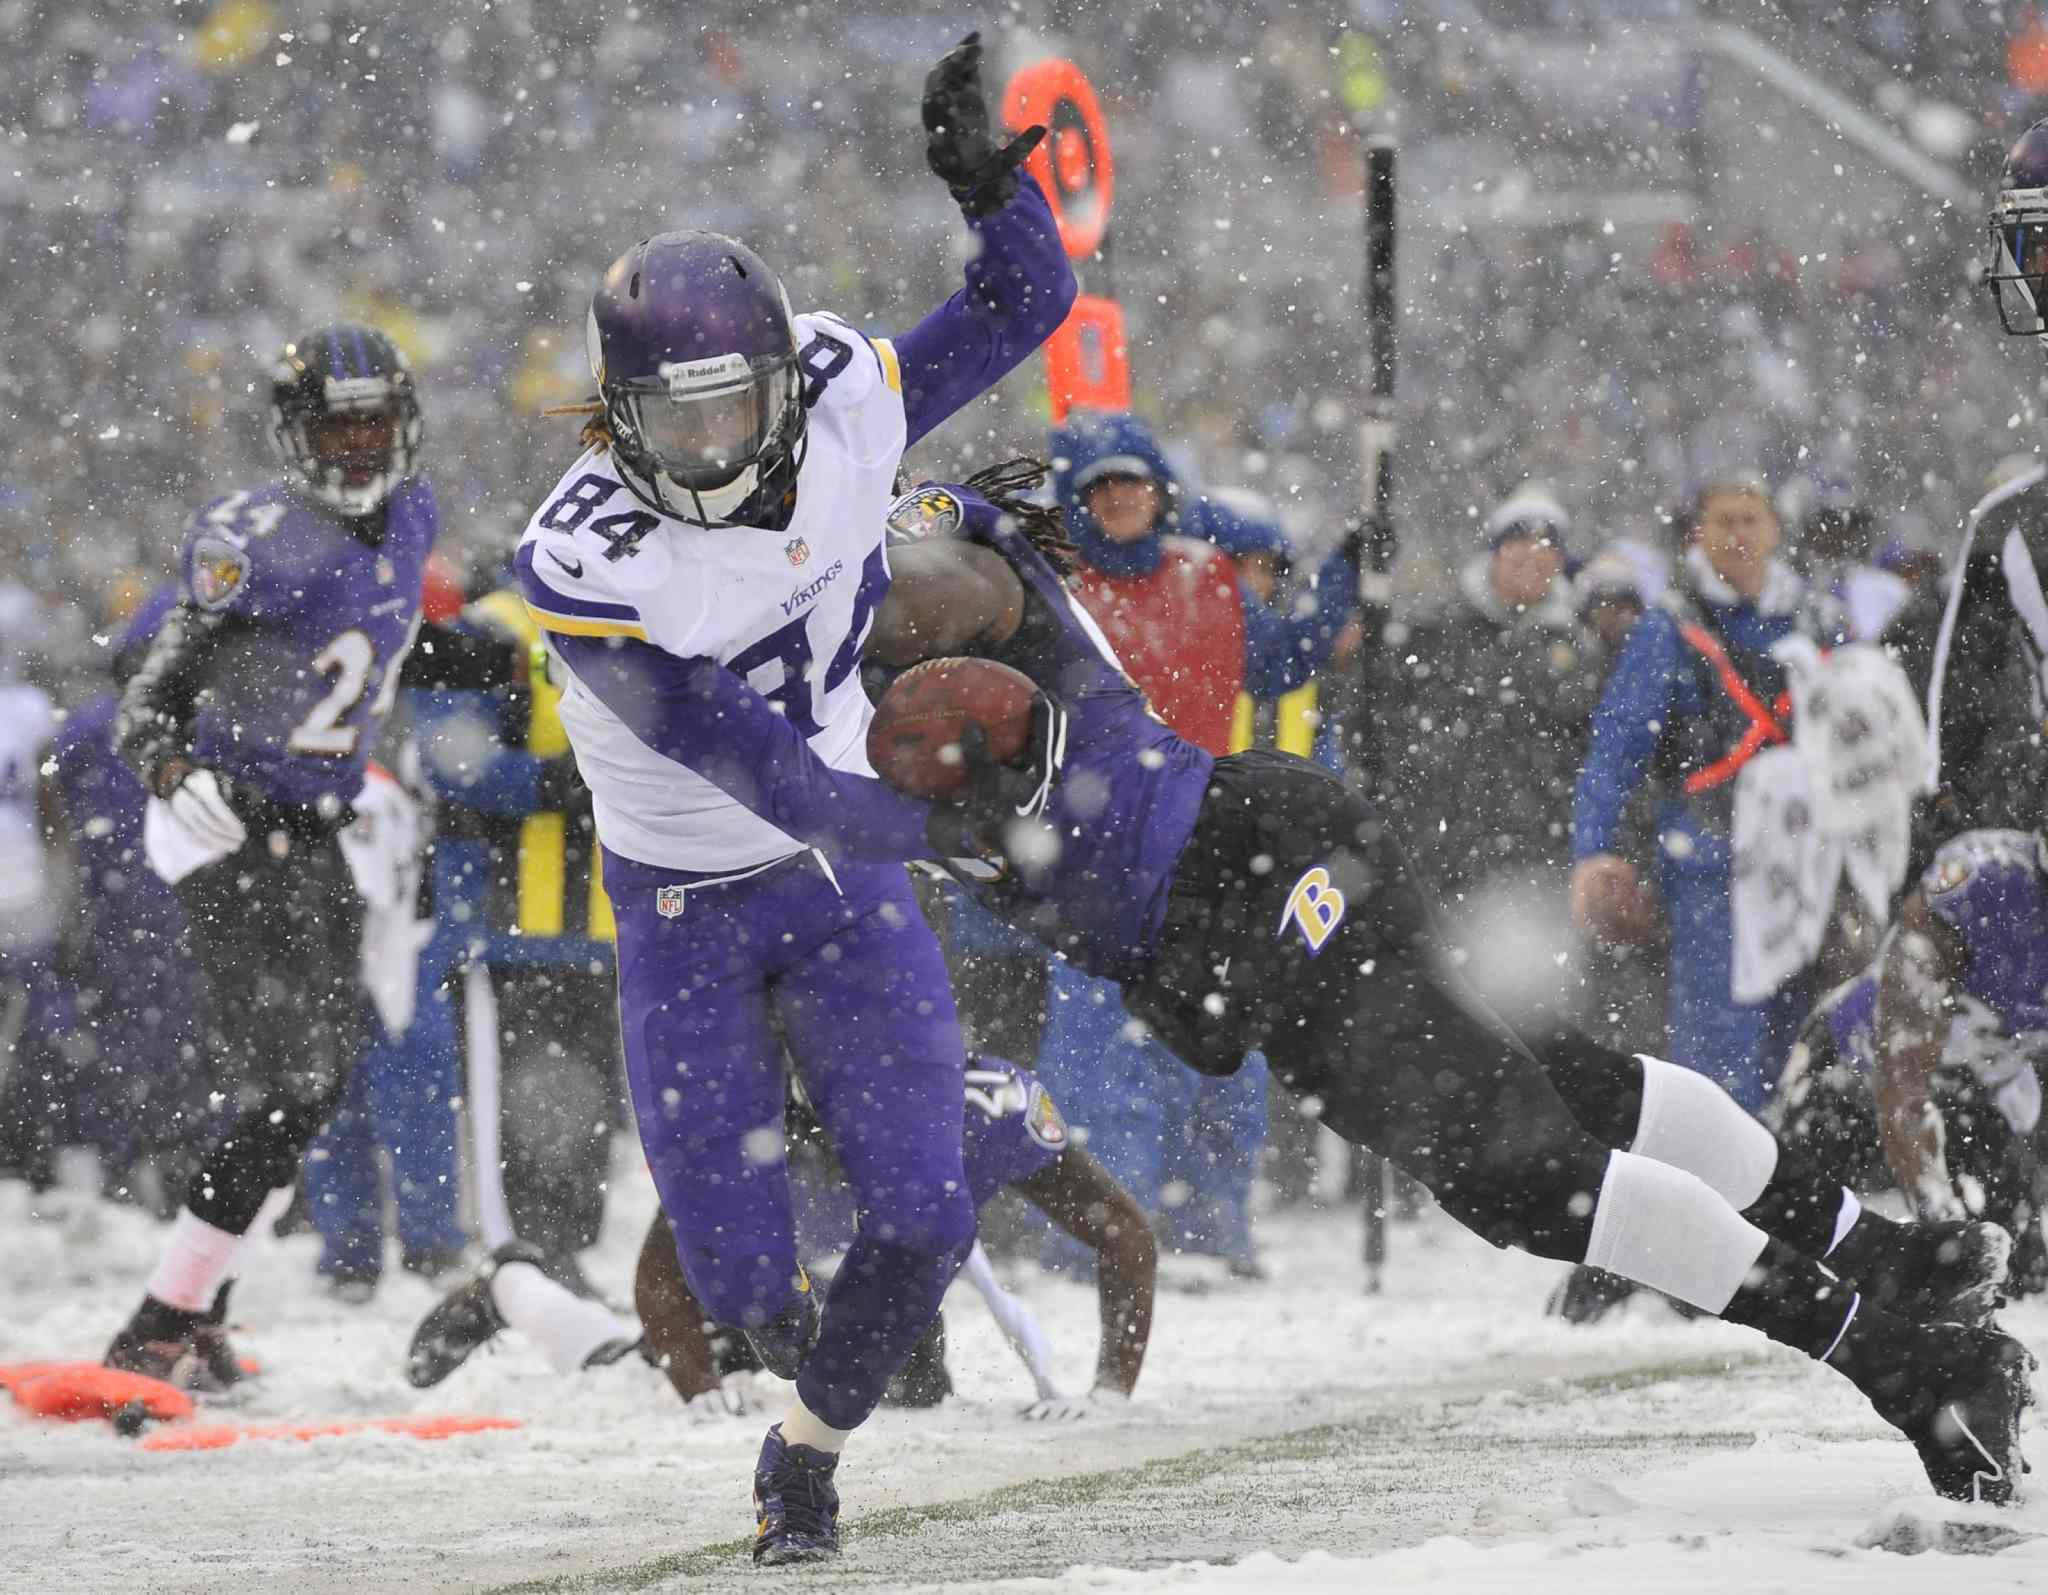 Minnesota Vikings wide receiver Cordarrelle Patterson (84) tries to stay in bounds as he rushes the ball past Baltimore Ravens linebacker Pernell McPhee.